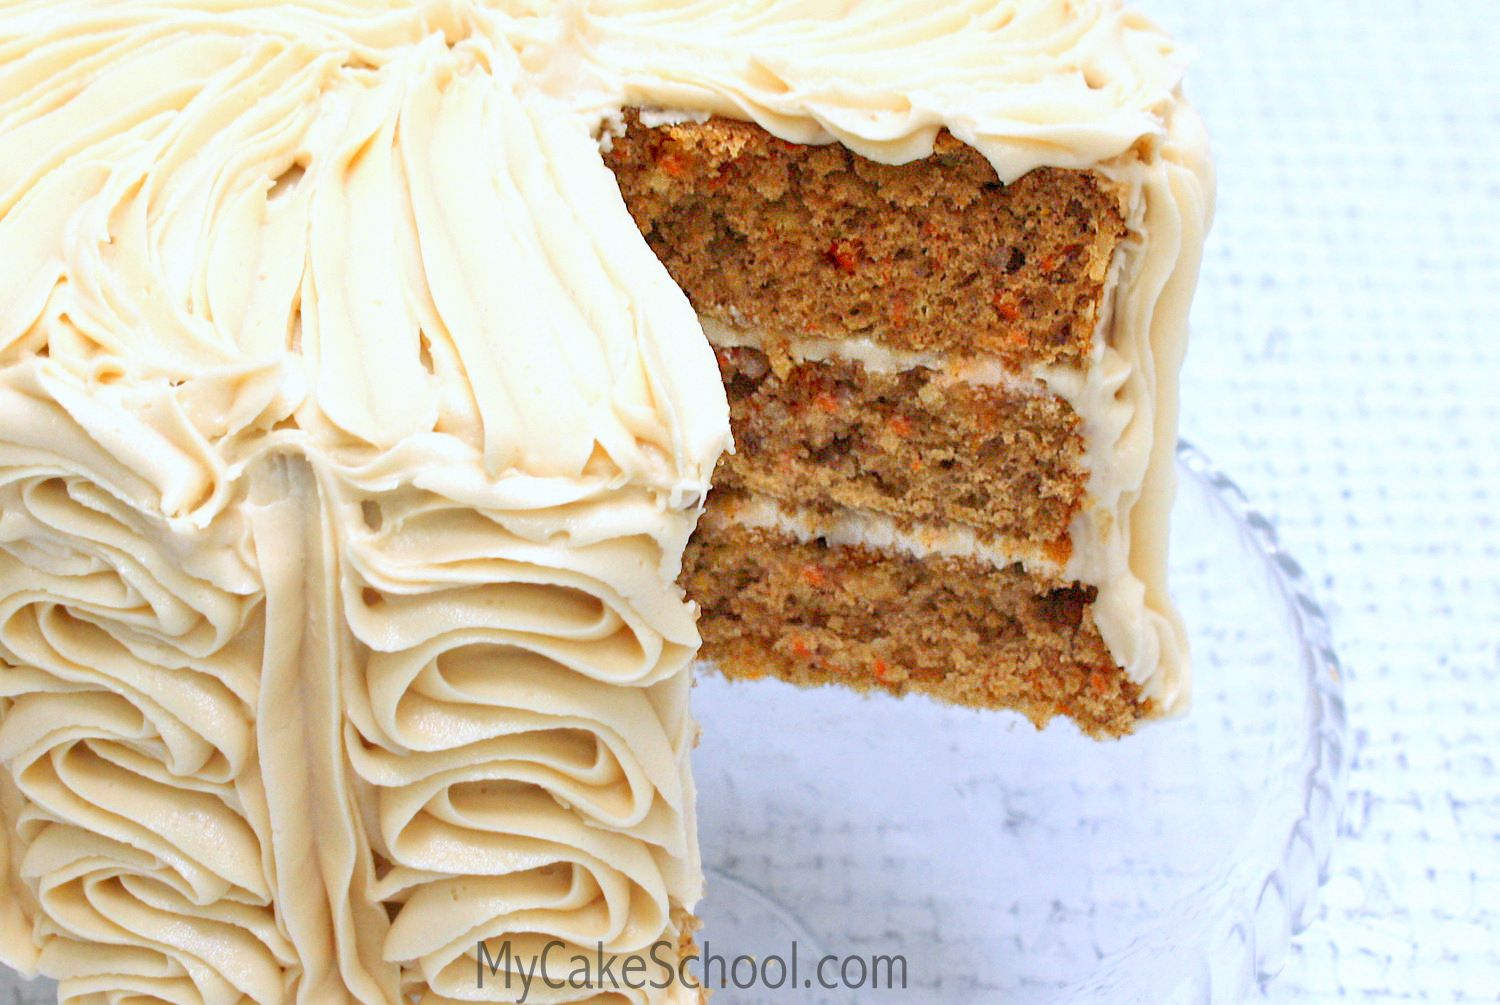 Carrot Cake A Doctored Cake Mix Recipe Amazing Carrot Cake